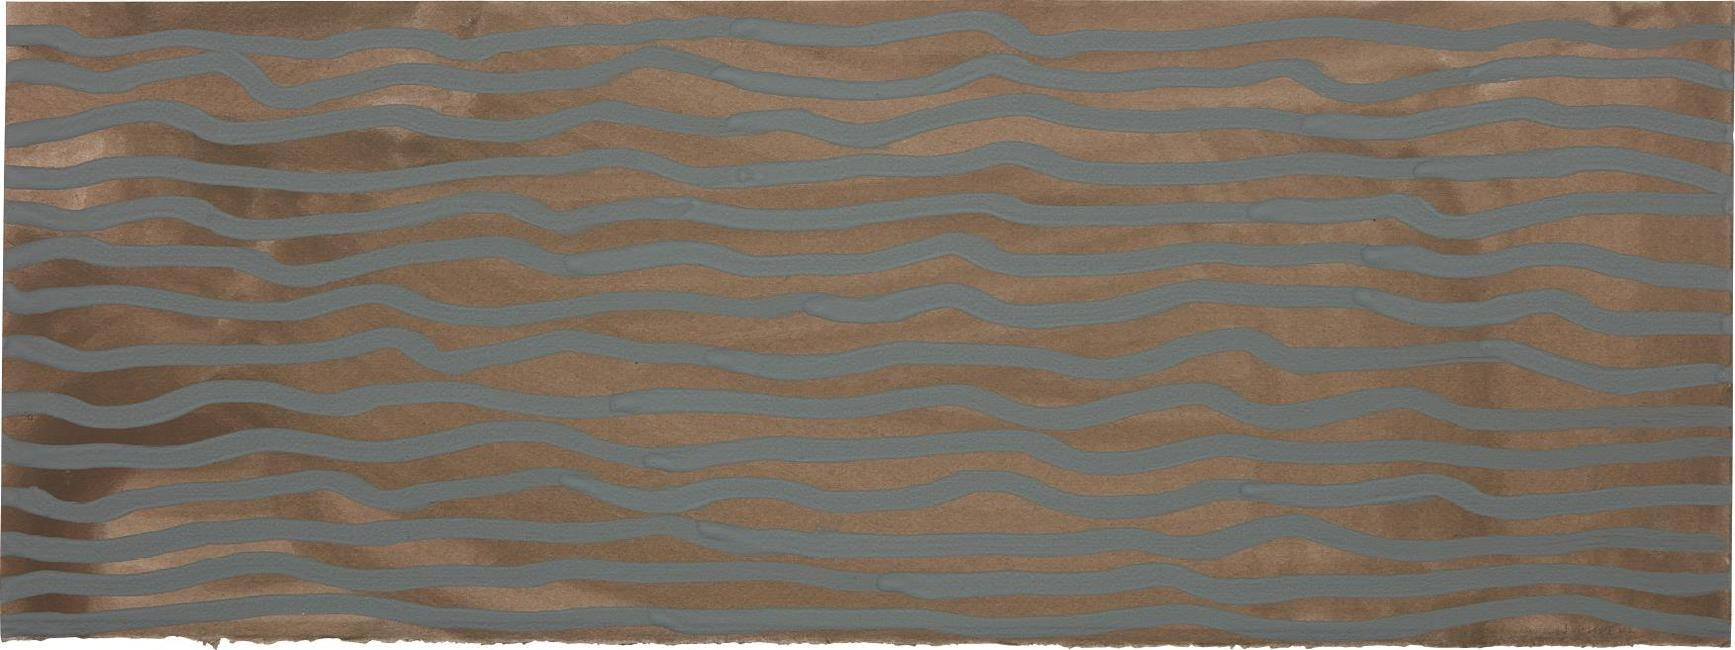 Sol LeWitt-Wavy Brushstrokes (Brown And Blue)-2002